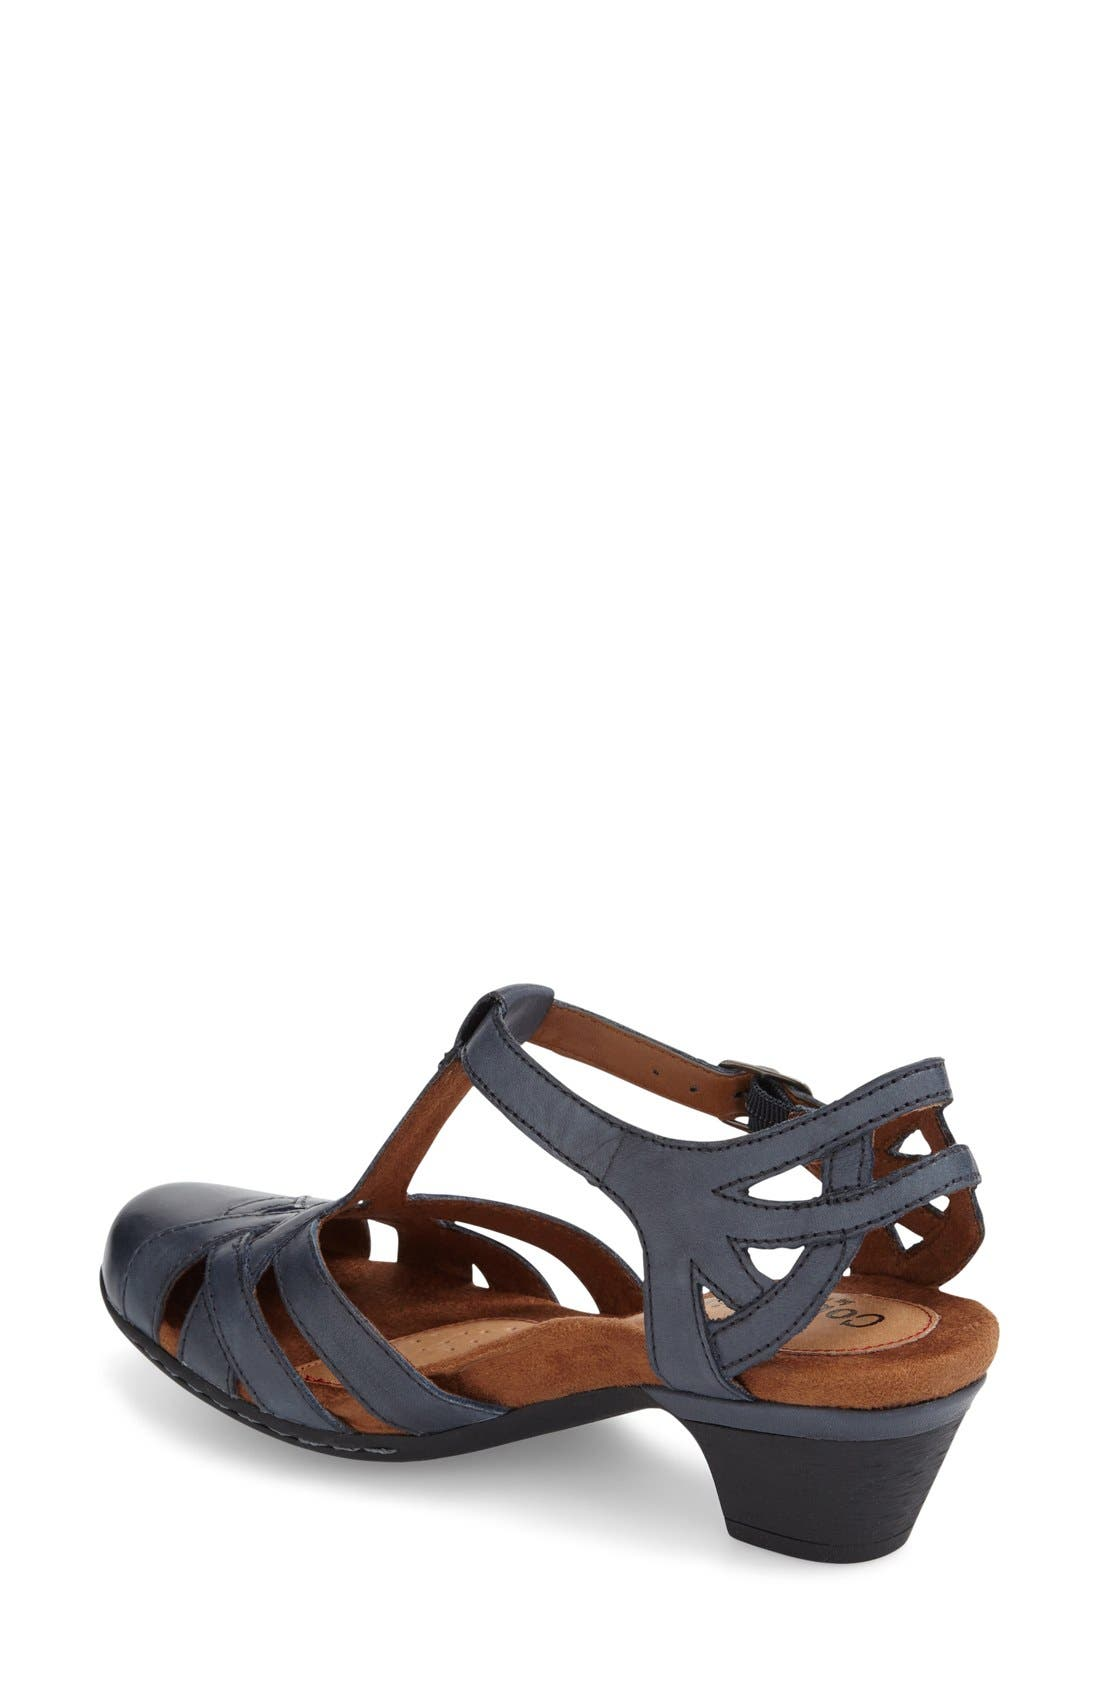 'Aubrey' Sandal,                             Alternate thumbnail 59, color,